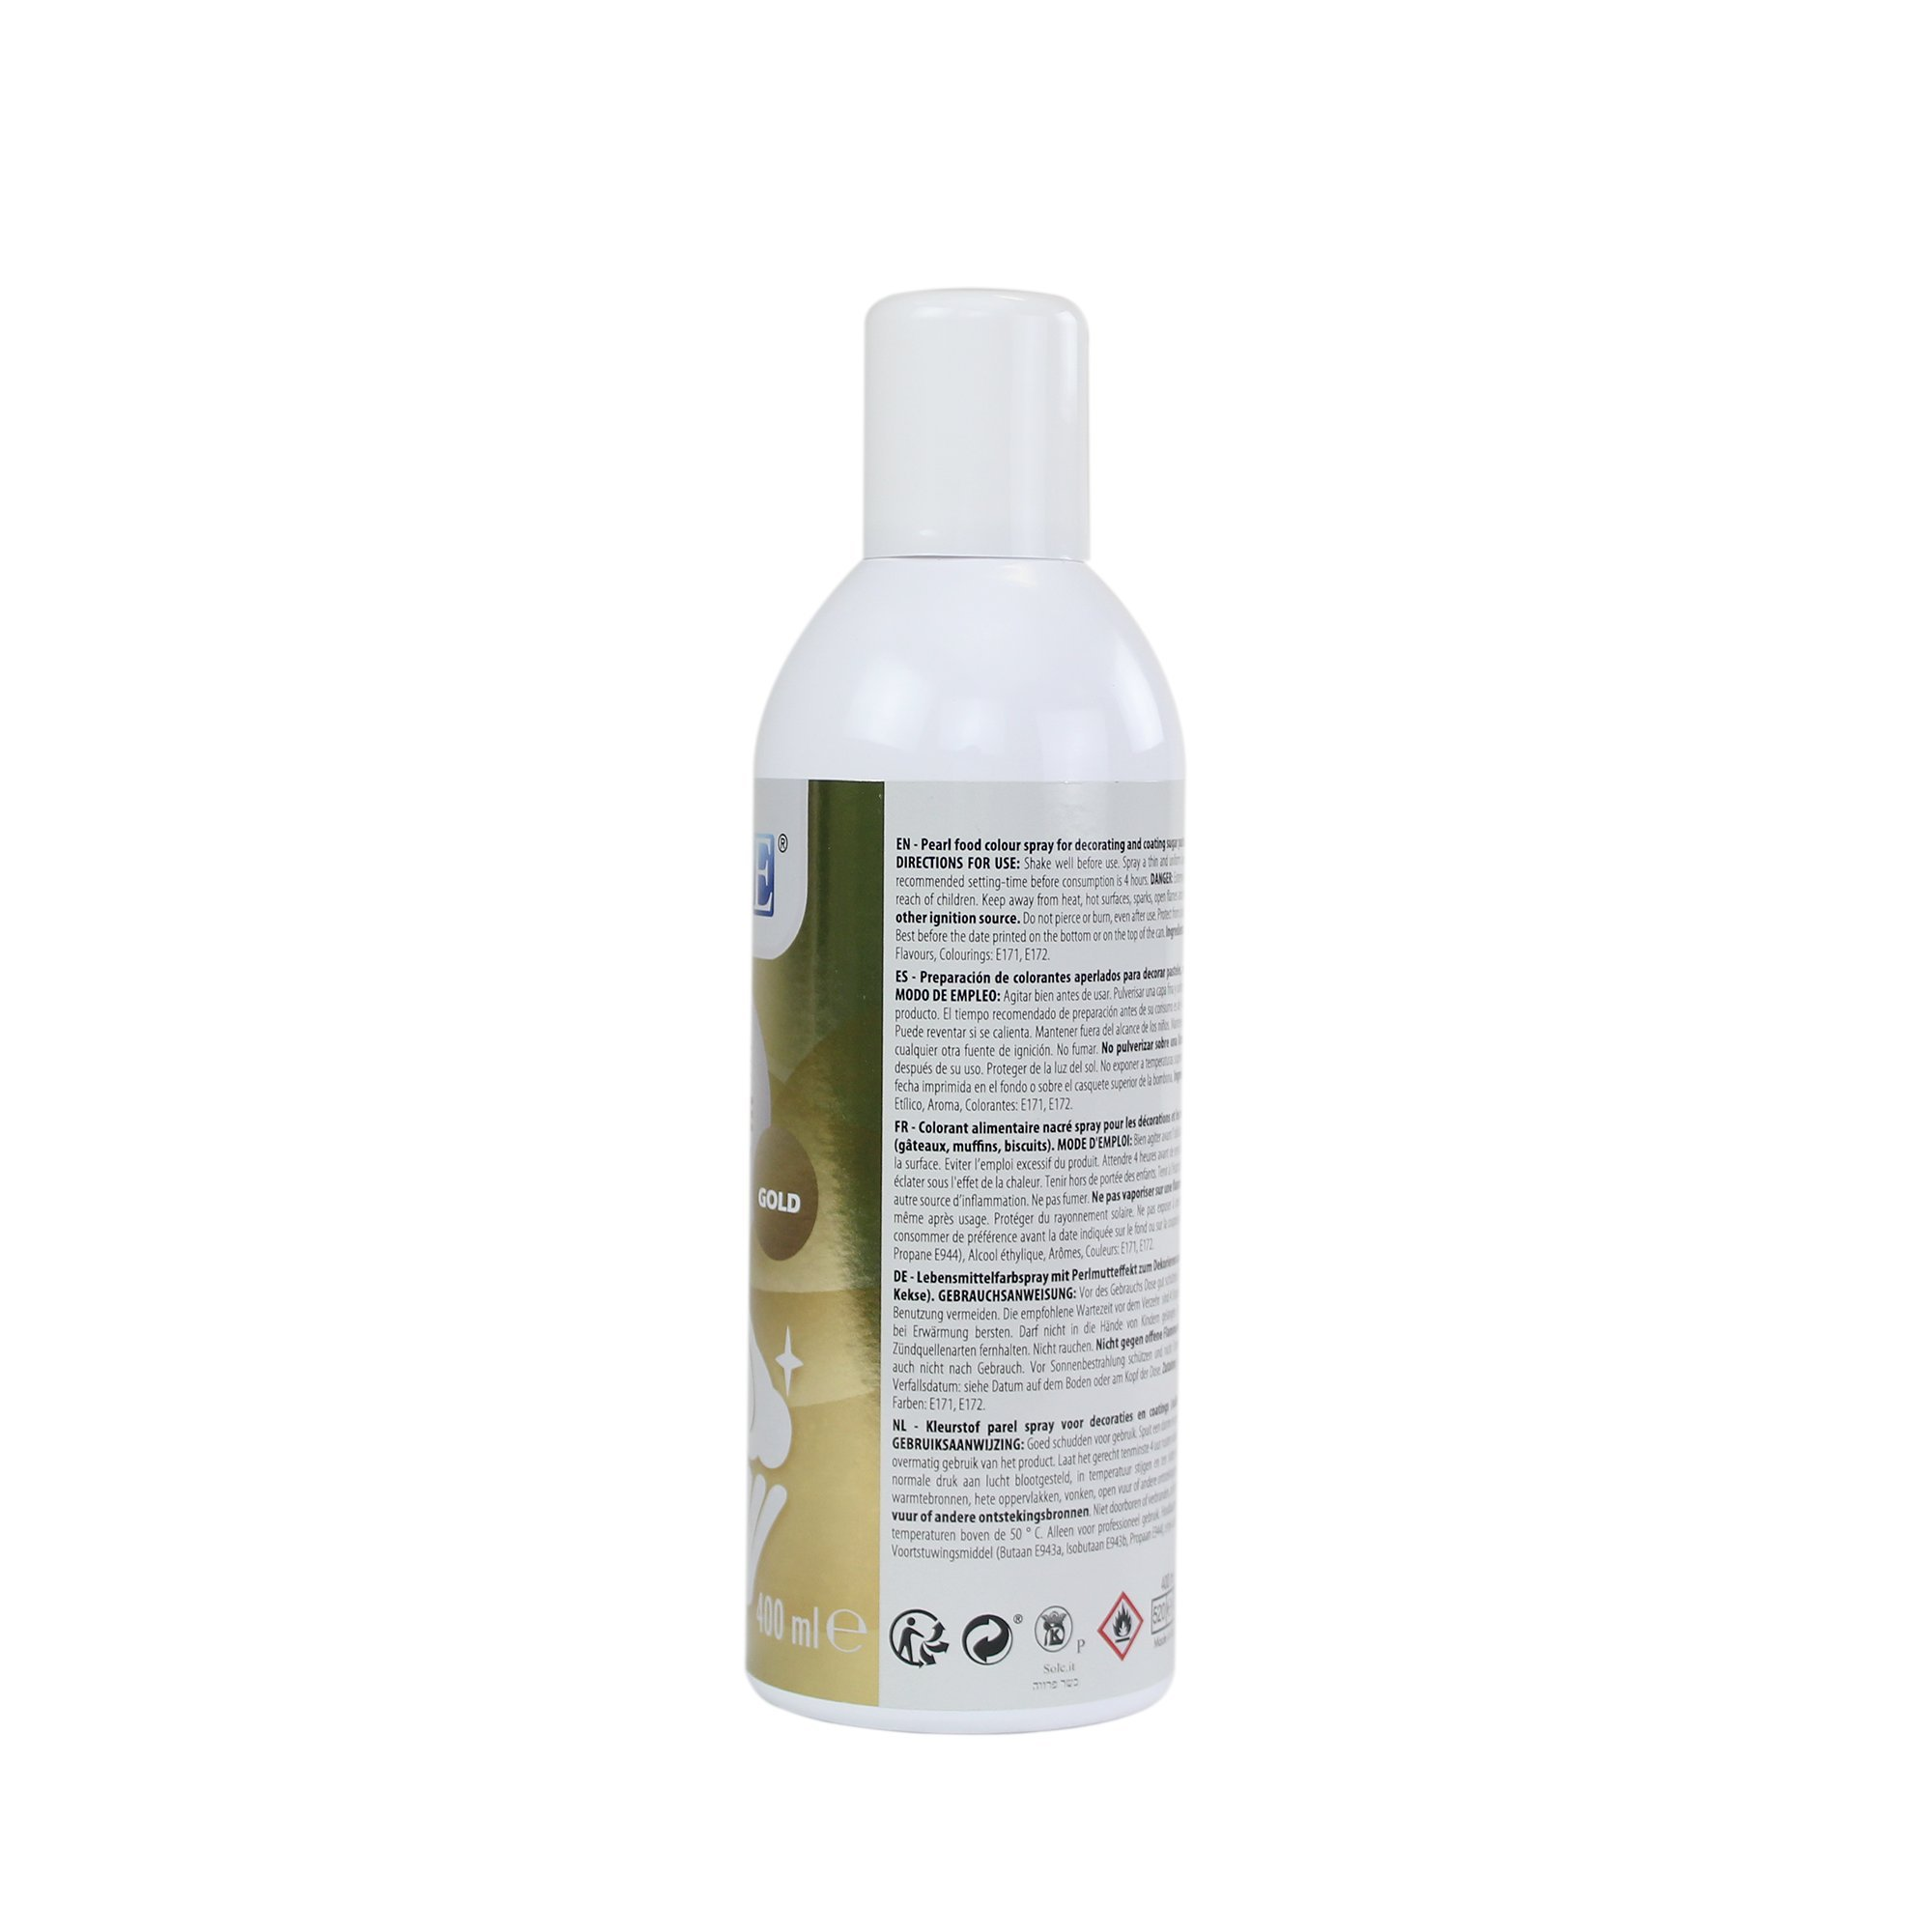 PME LS794 Tall Edible Lustre Spray Tall Can-400ml (13.5 oz), Tall, Gold by PME (Image #4)